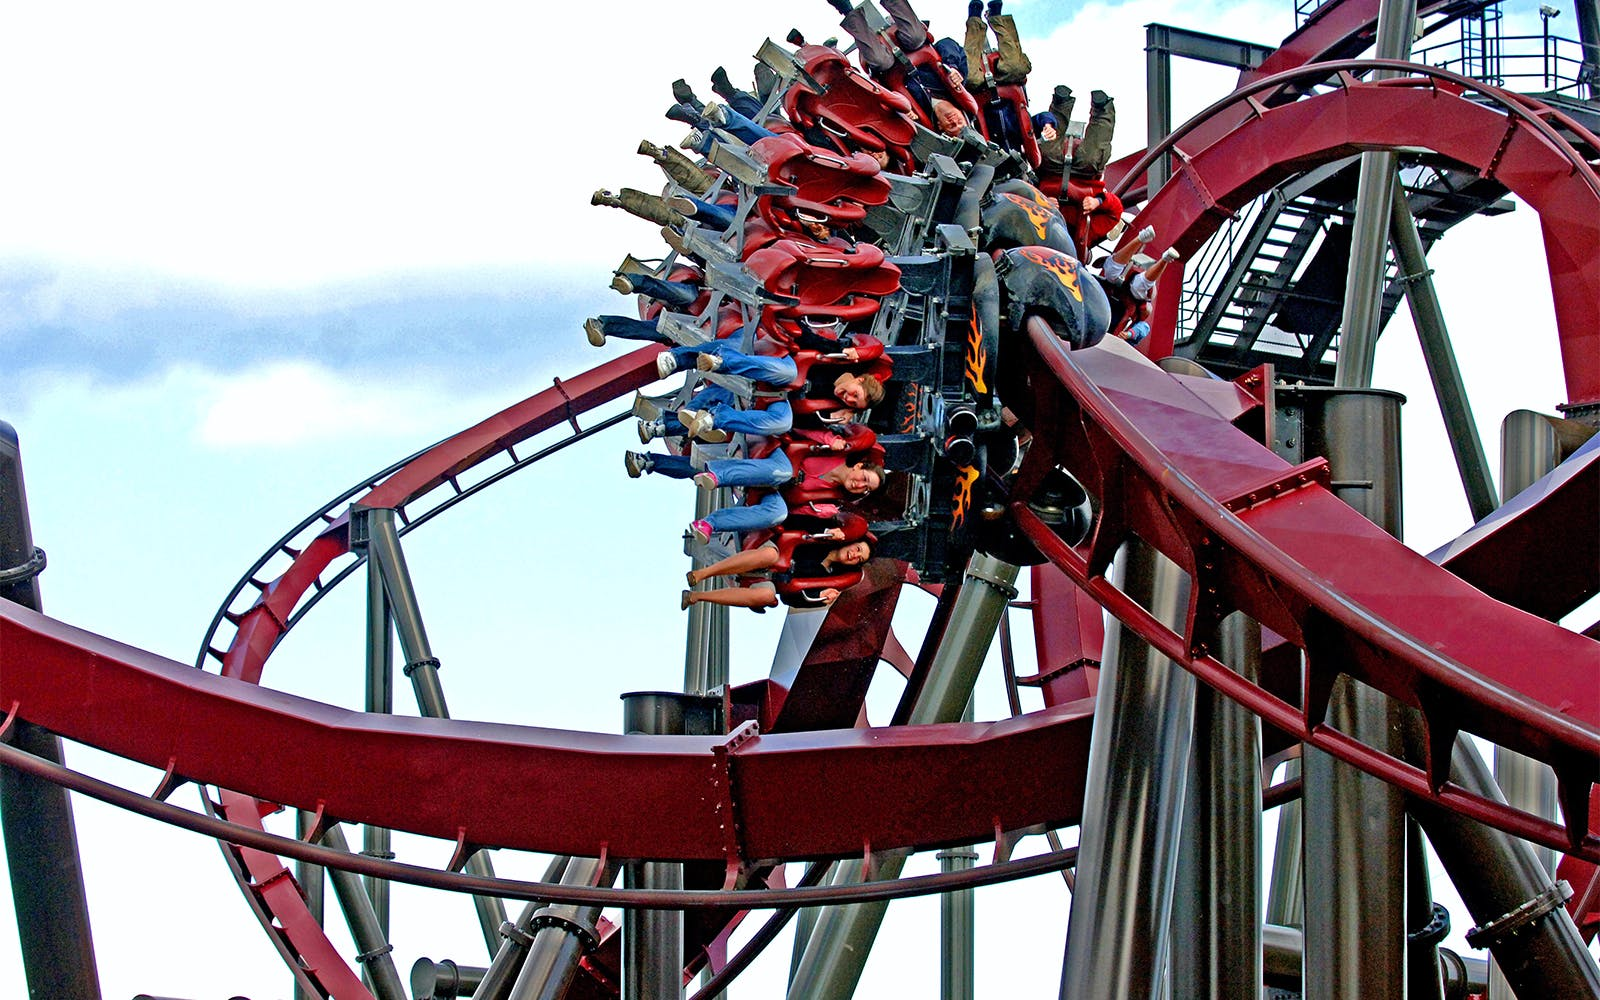 thorpe park resort entry -1